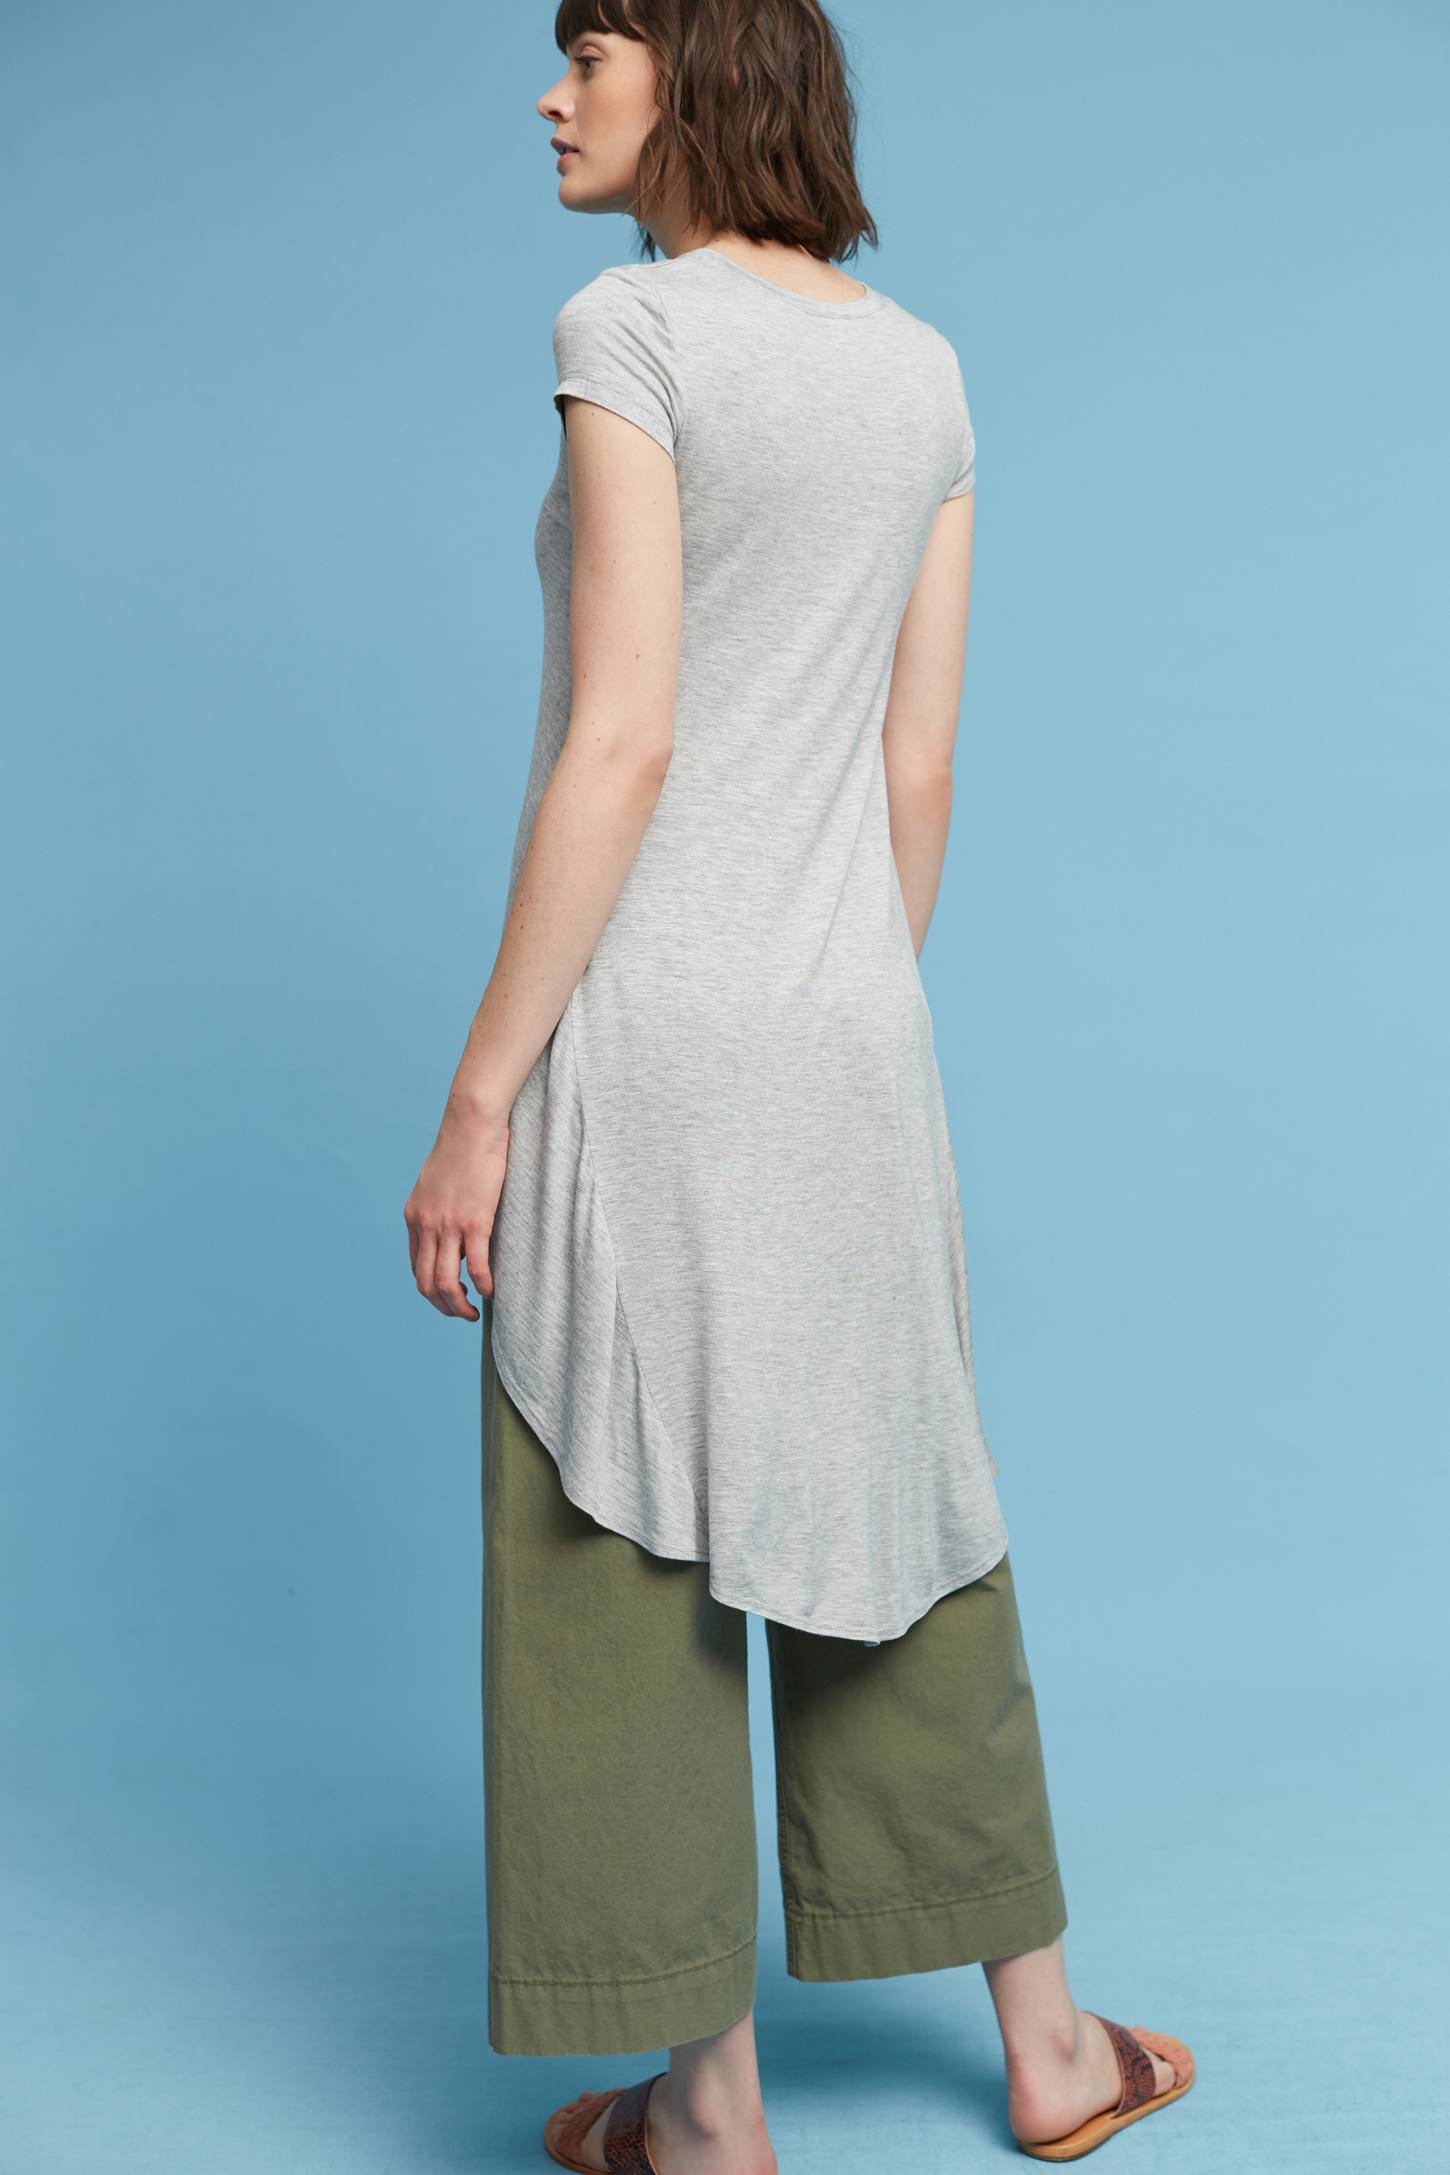 Slide View: 4: Kenzie Knotted Tunic